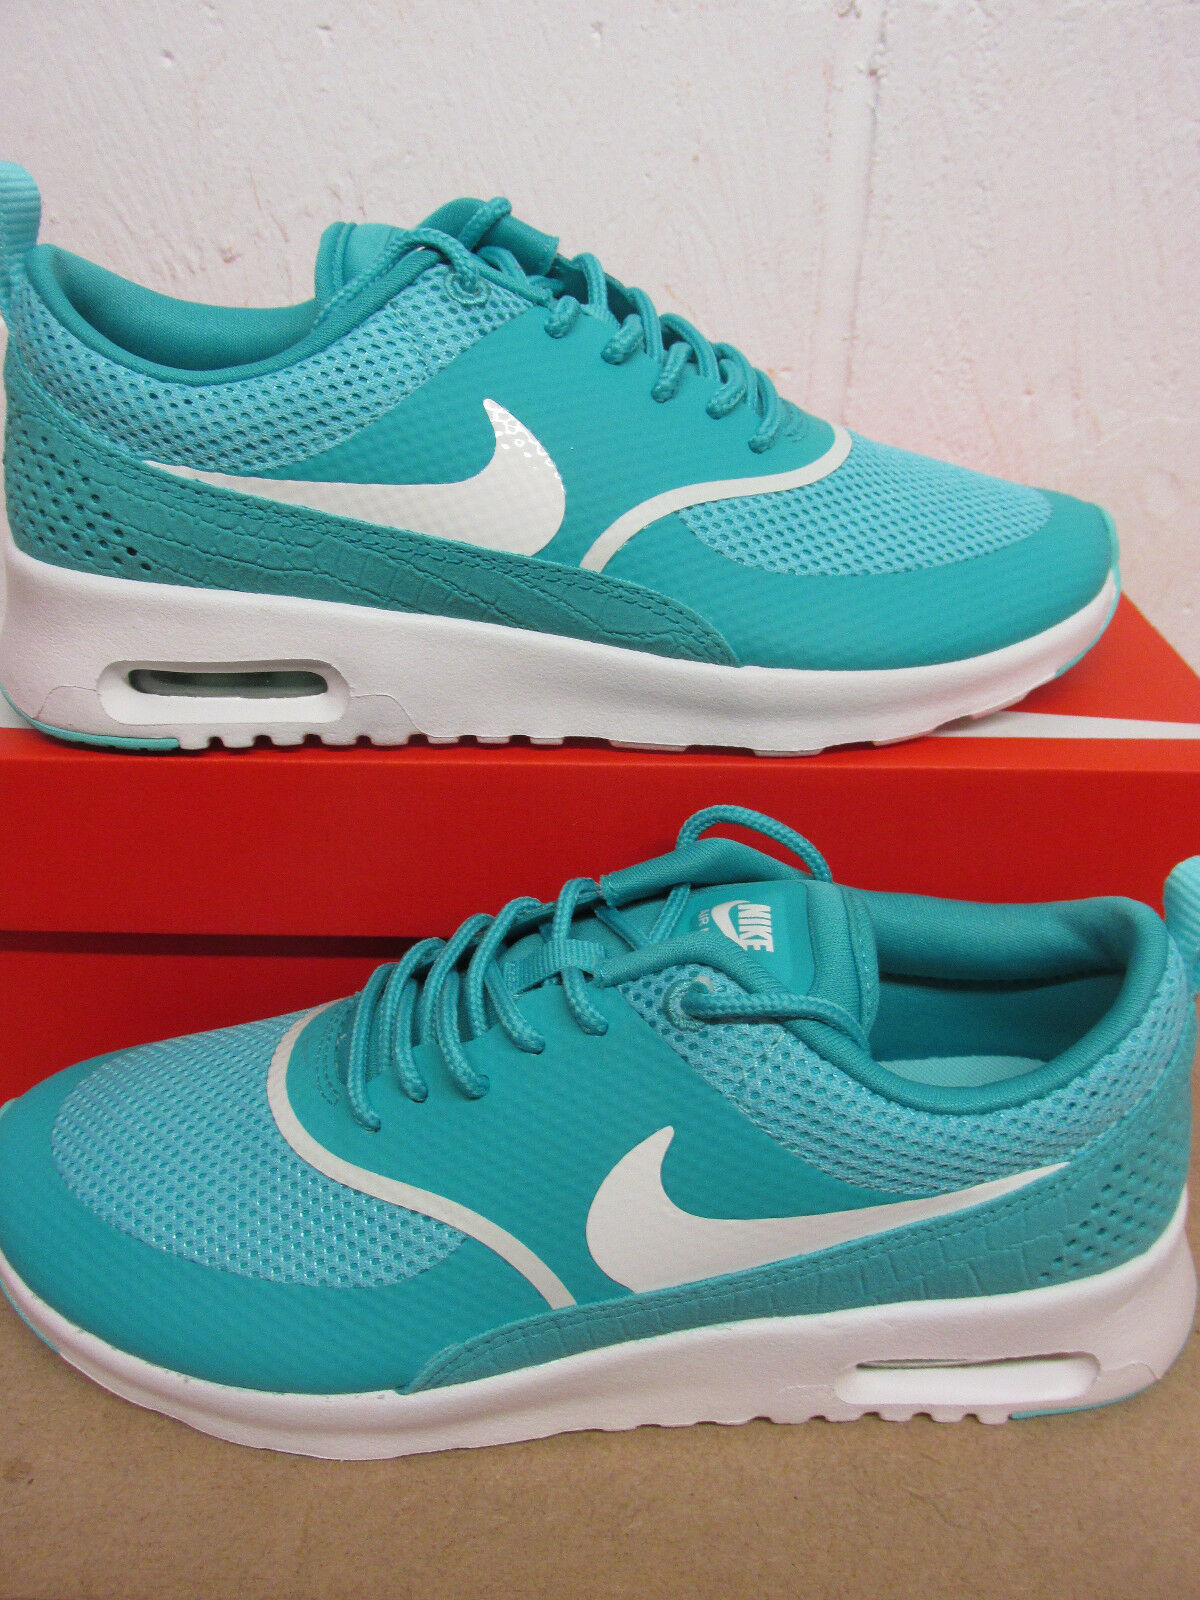 nike Femme air max THEA running trainers 599409 307 Baskets running